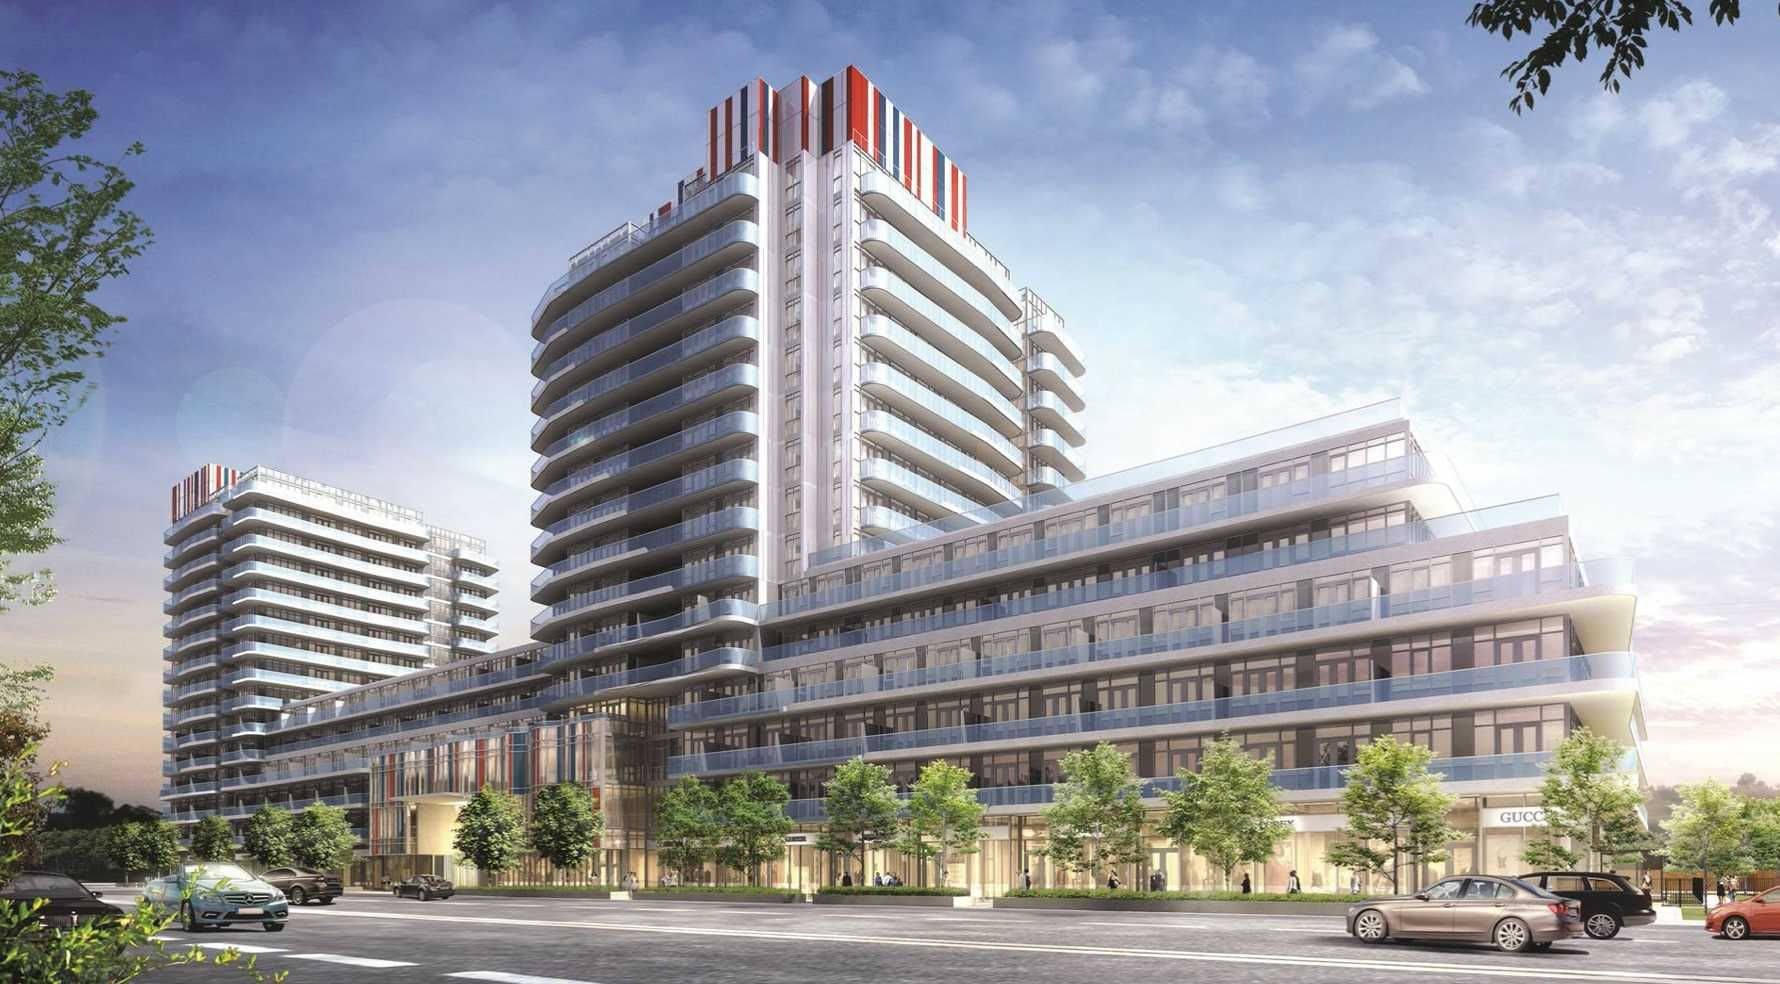 9471 Yonge St S, unit 548 for rent in Toronto - image #1